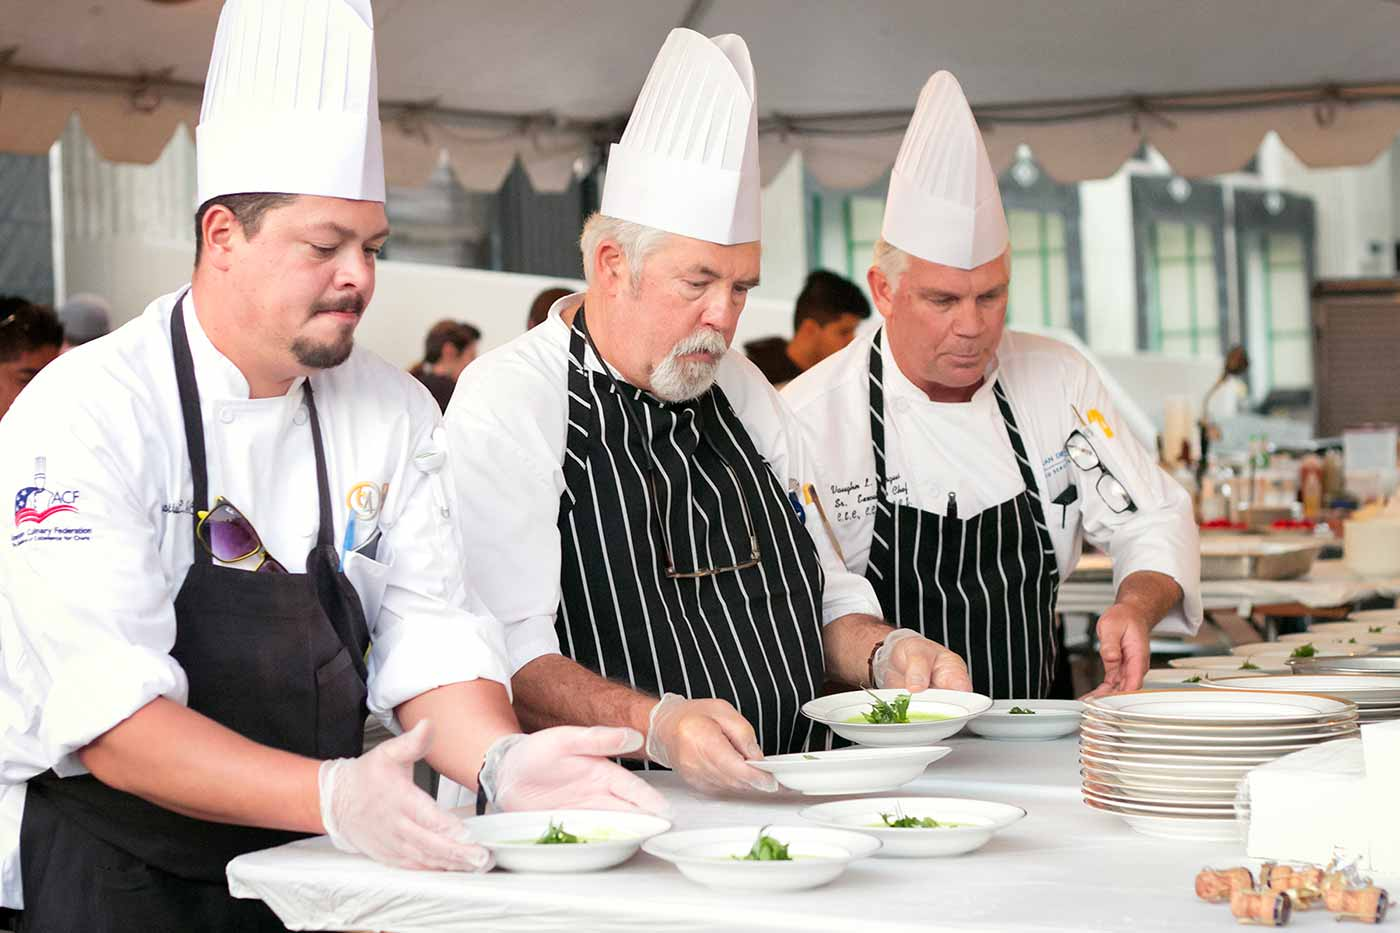 Photo: UC San Diego Executive Chef Vaughn Vargus (right), with UC San Diego chefs Dave Gardinier and Tiago Battastini